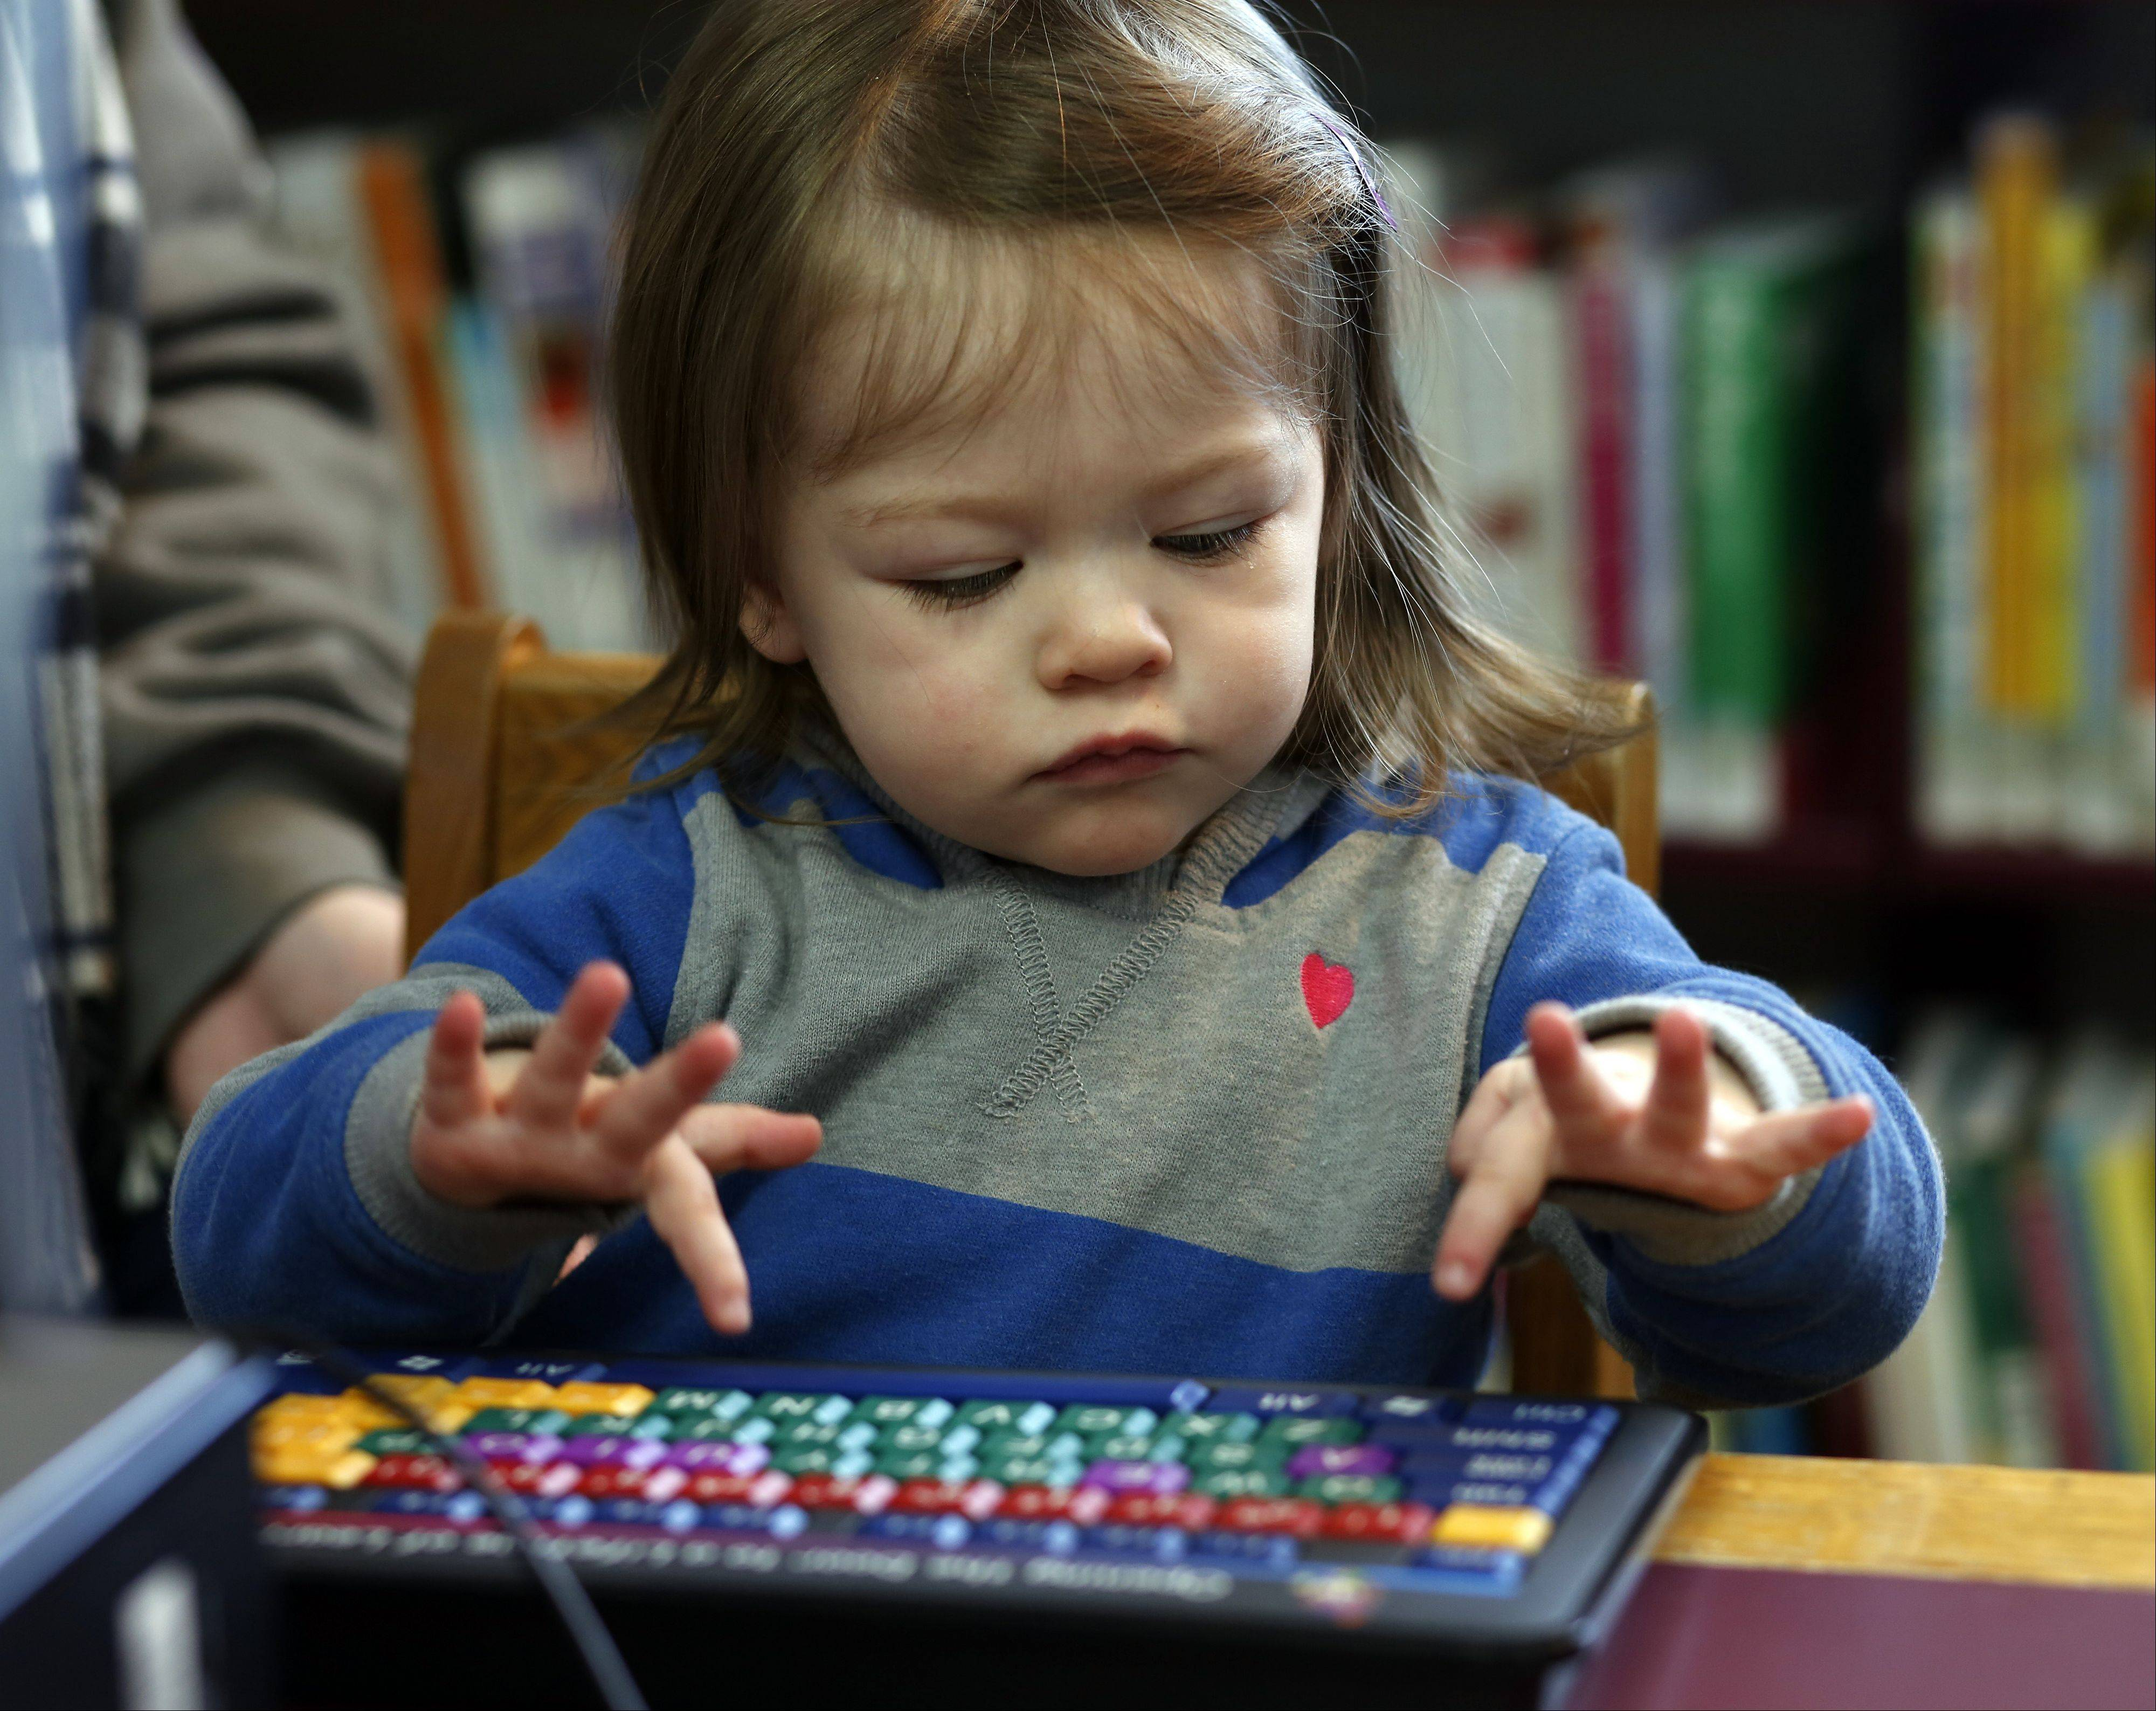 The Huntley Library is celebrating its 25th anniversary this year. Here 19-month-old Zoe Peters of Huntley works to identify animals on a library computer.